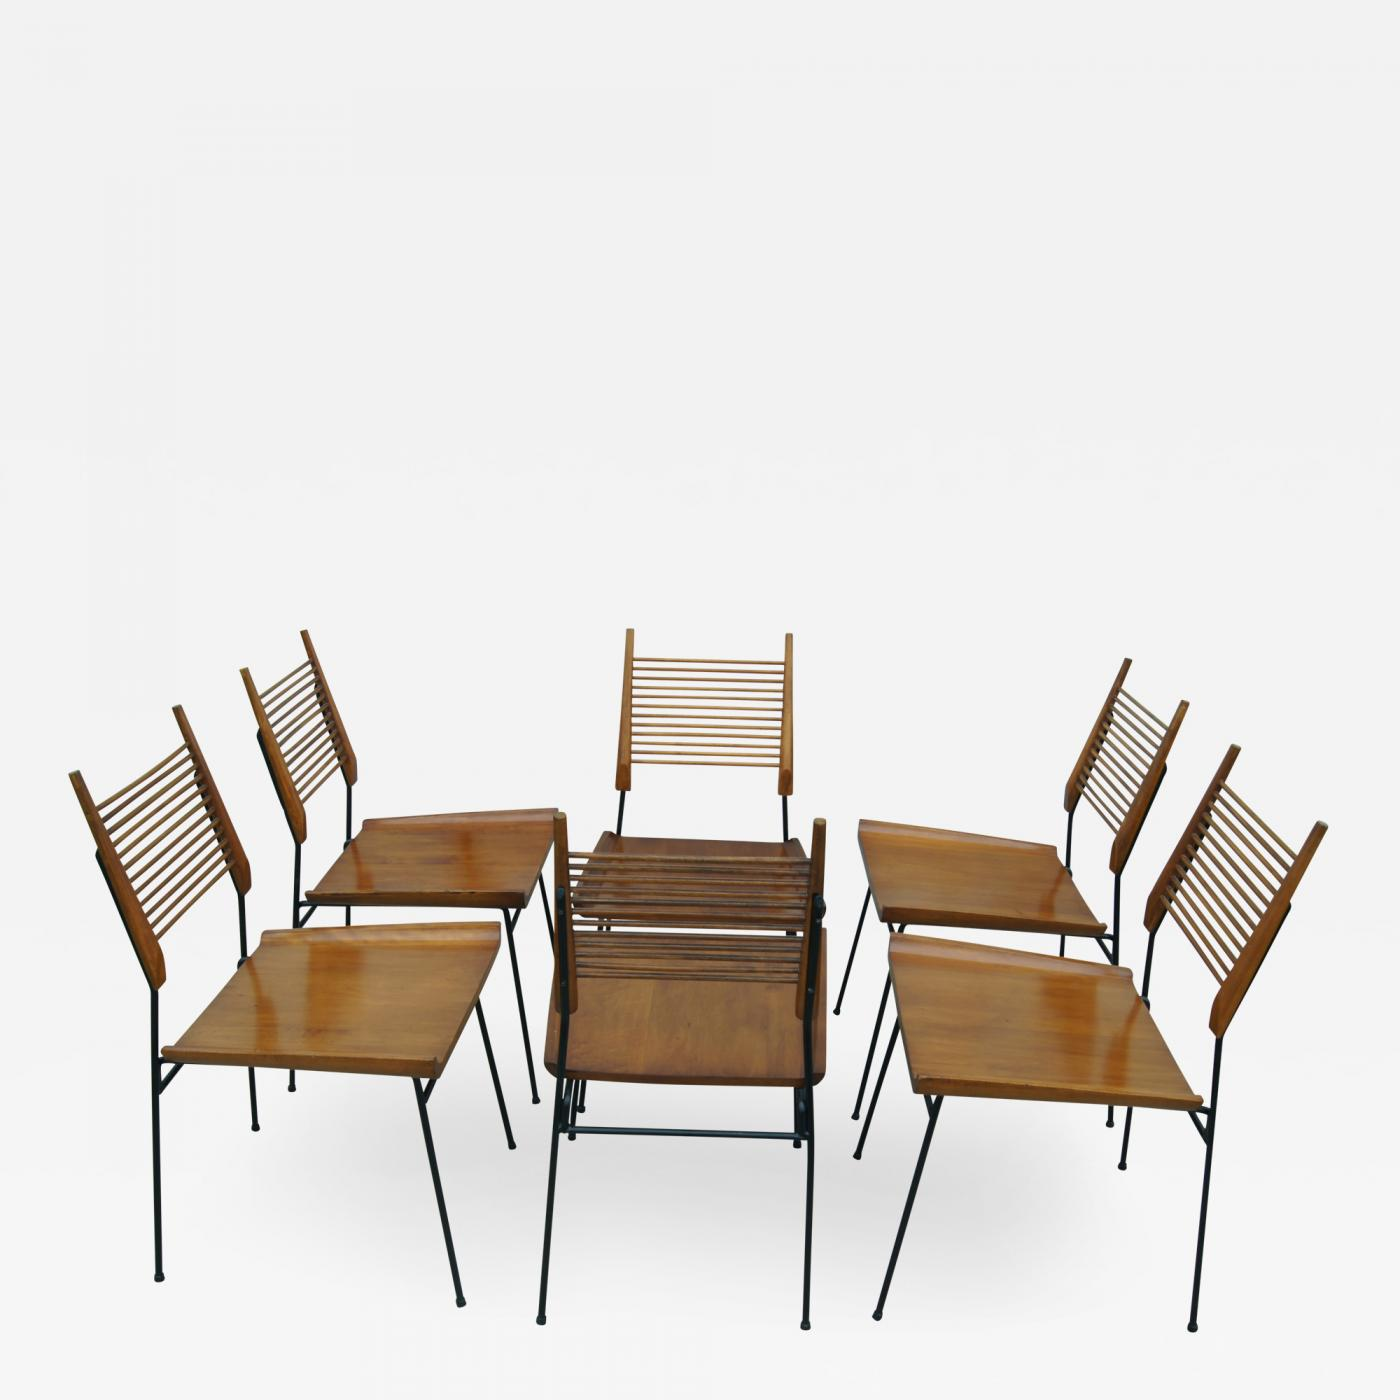 Paul Mccobb Chairs Paul Mccobb Set Of Six Dining Chairs By Paul Mccobb For Winchendon